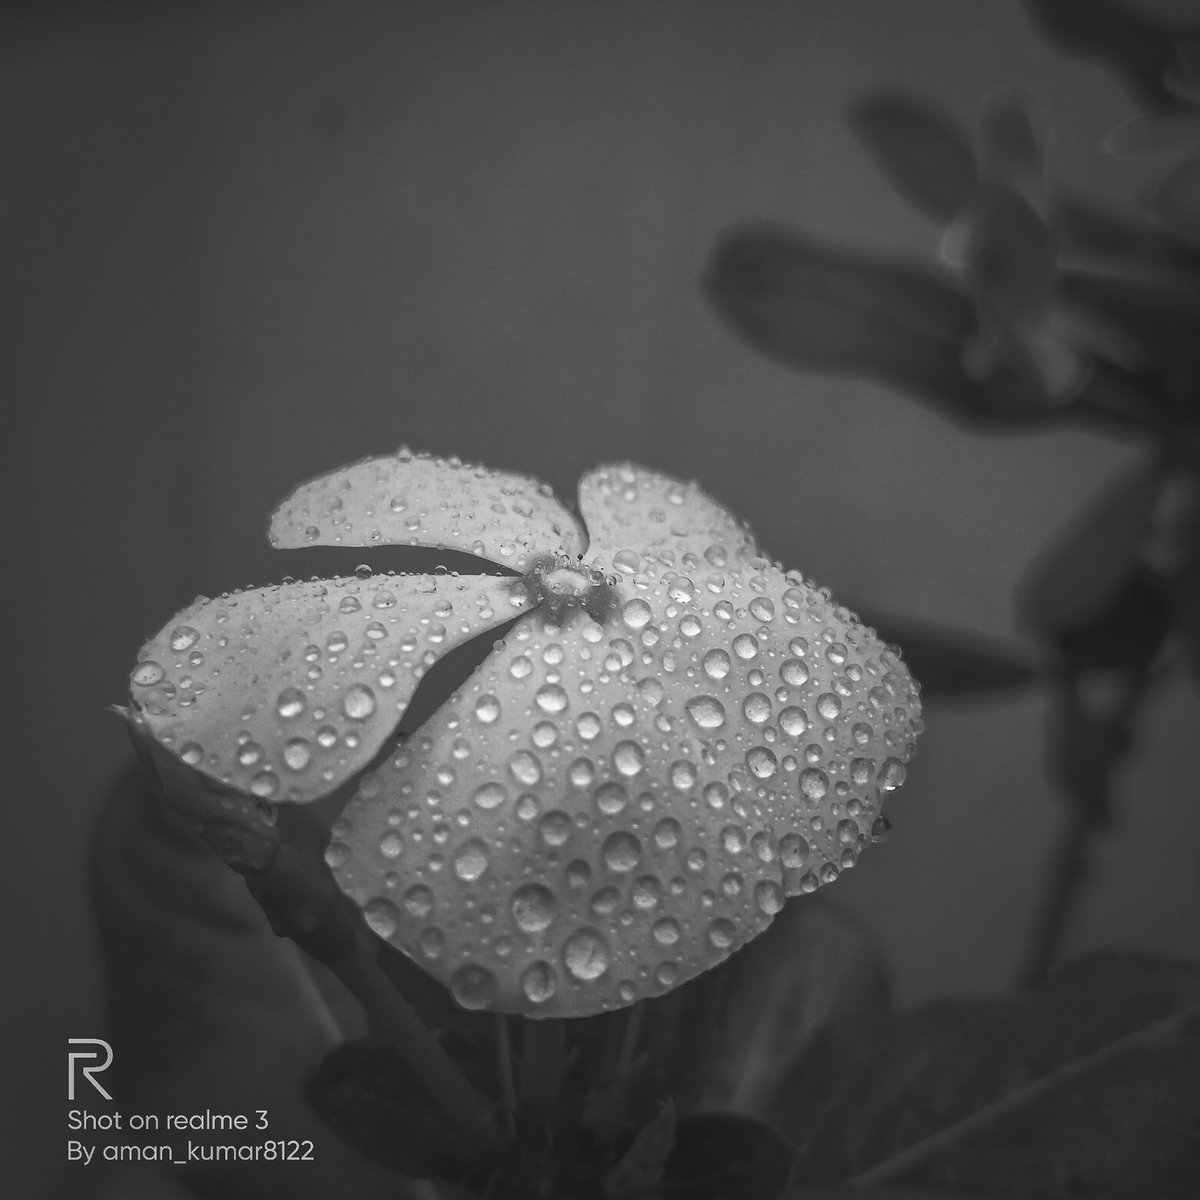 THE SHADES OF GREY. #Flowers #flowerphotography #flowerstagram #flower #2020 #photography #photo #photocontest #Photos #PhotoOfTheDay #Photoshoot #photographer #photographylovers #quotes #blackandwhite #blackandwhitephoto #blackandwhitephotography #like